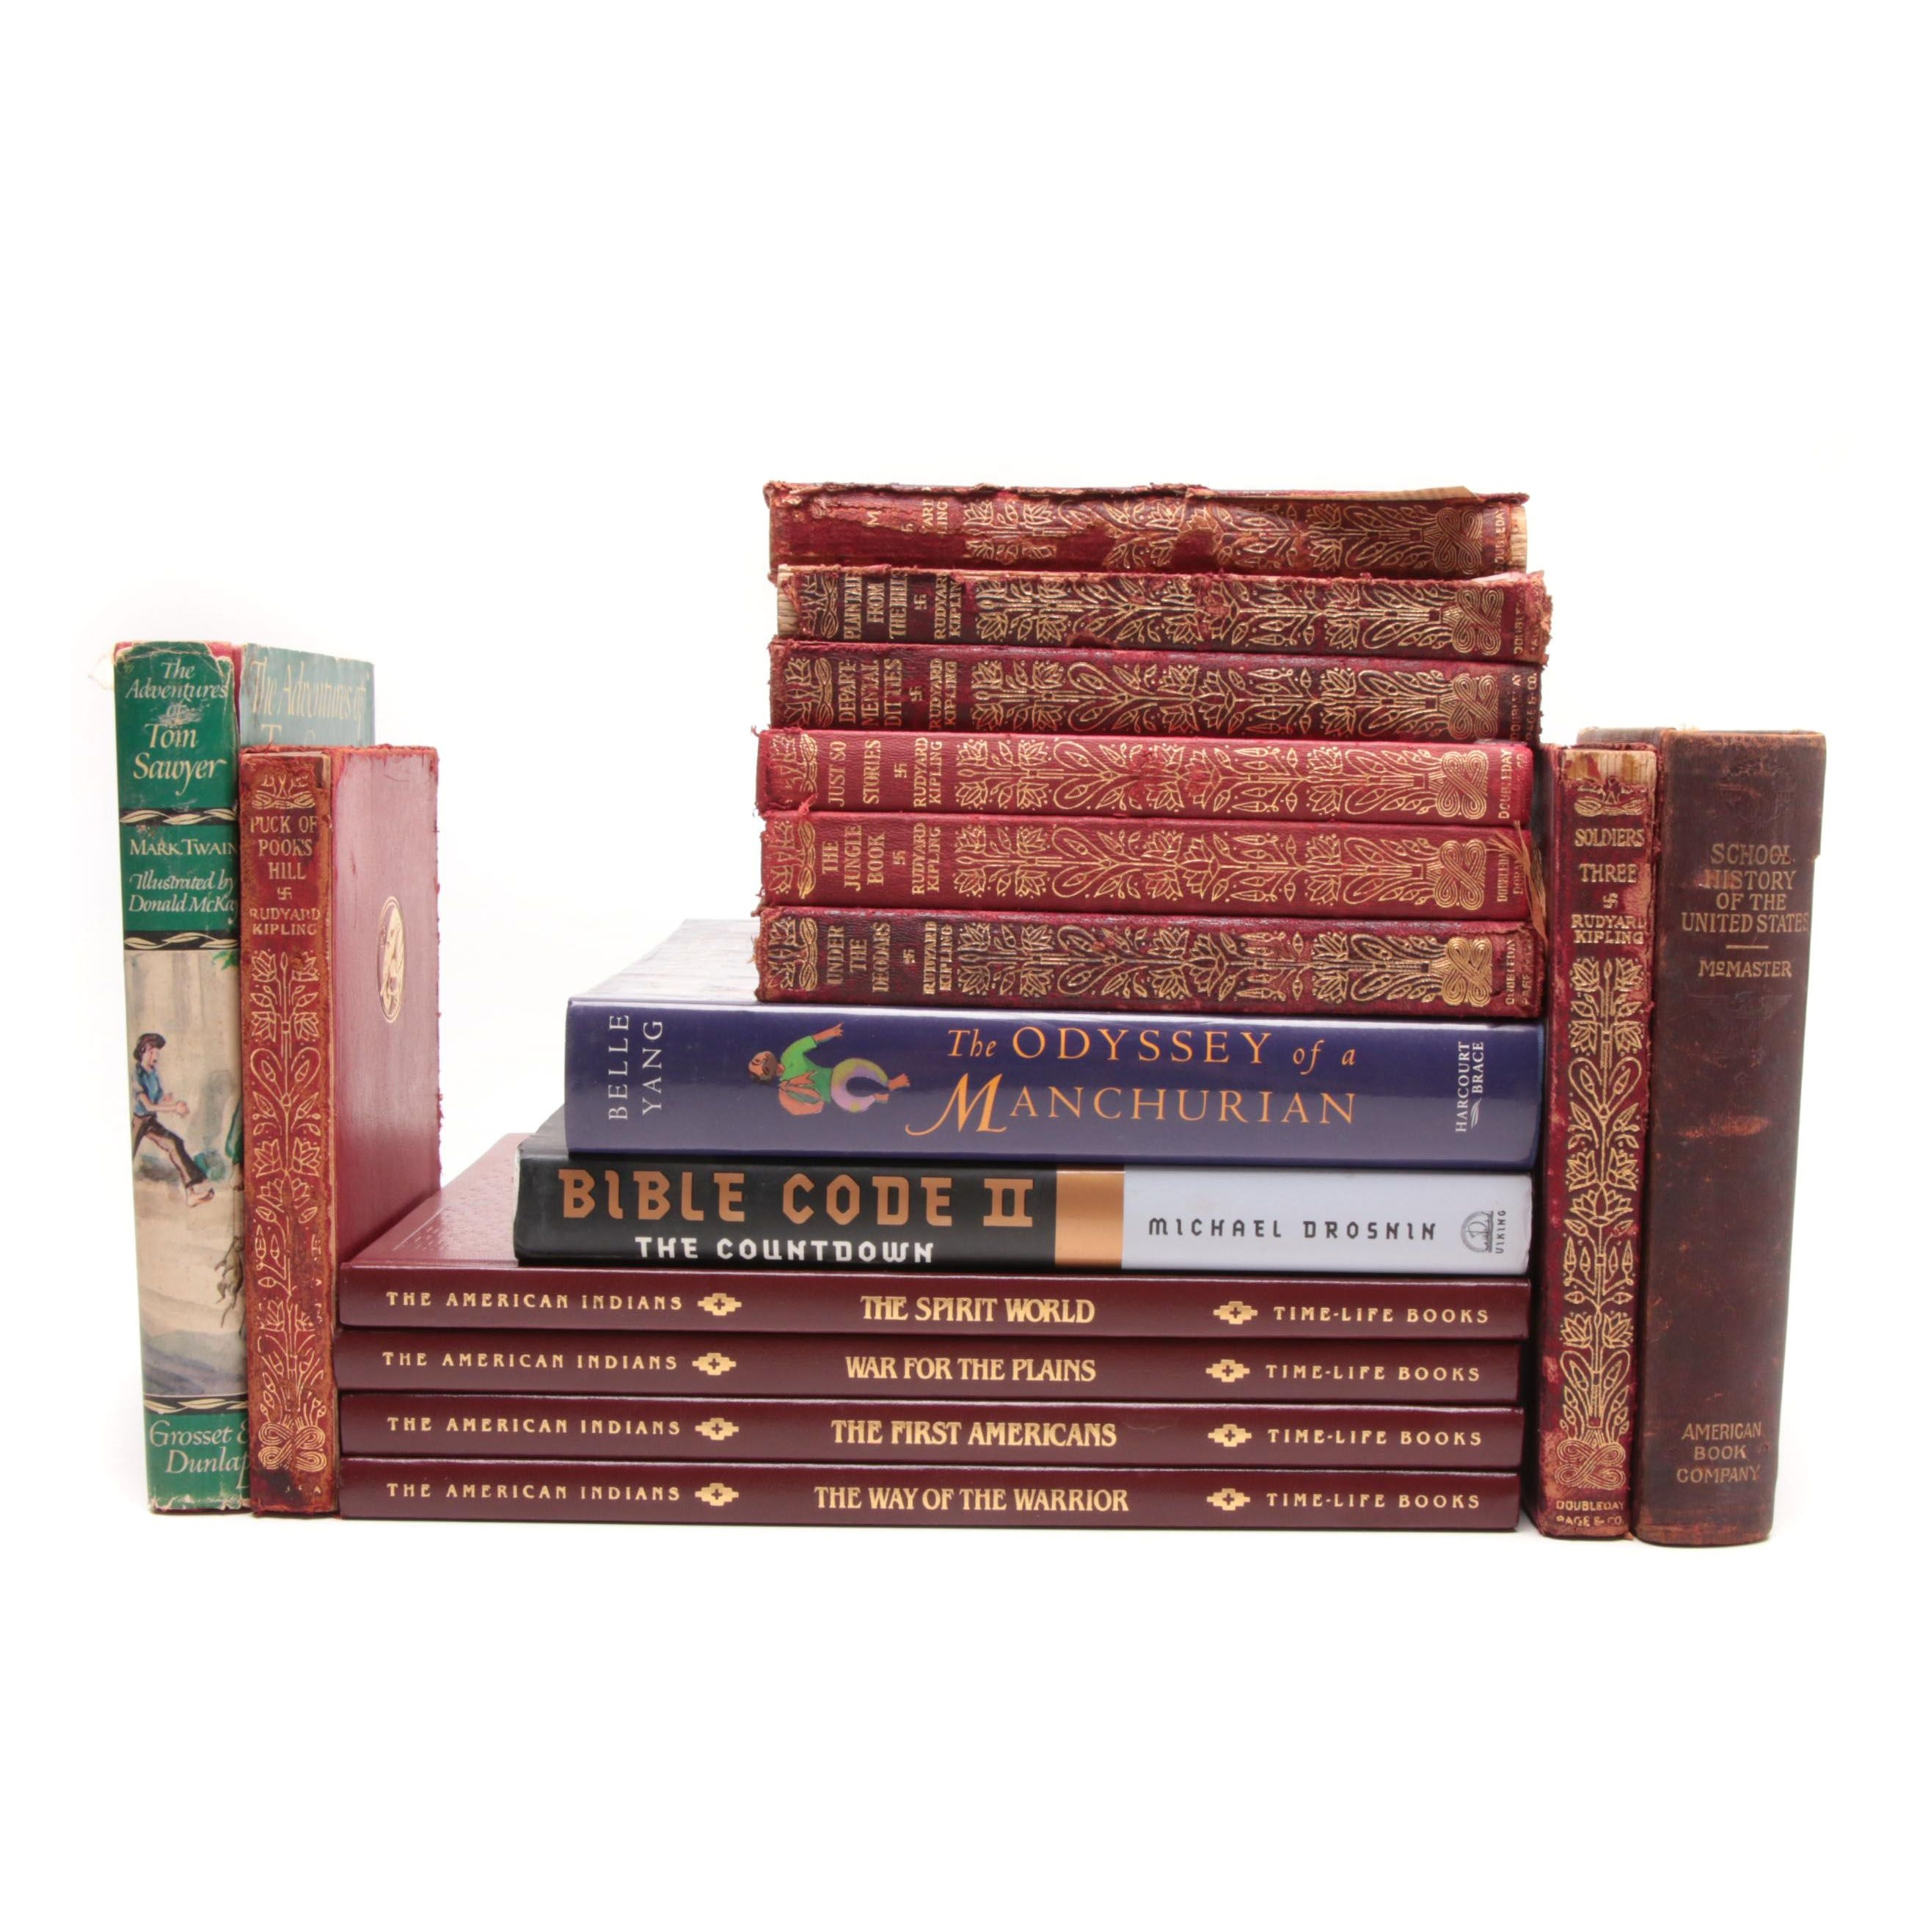 Classic Fiction and Reference Books